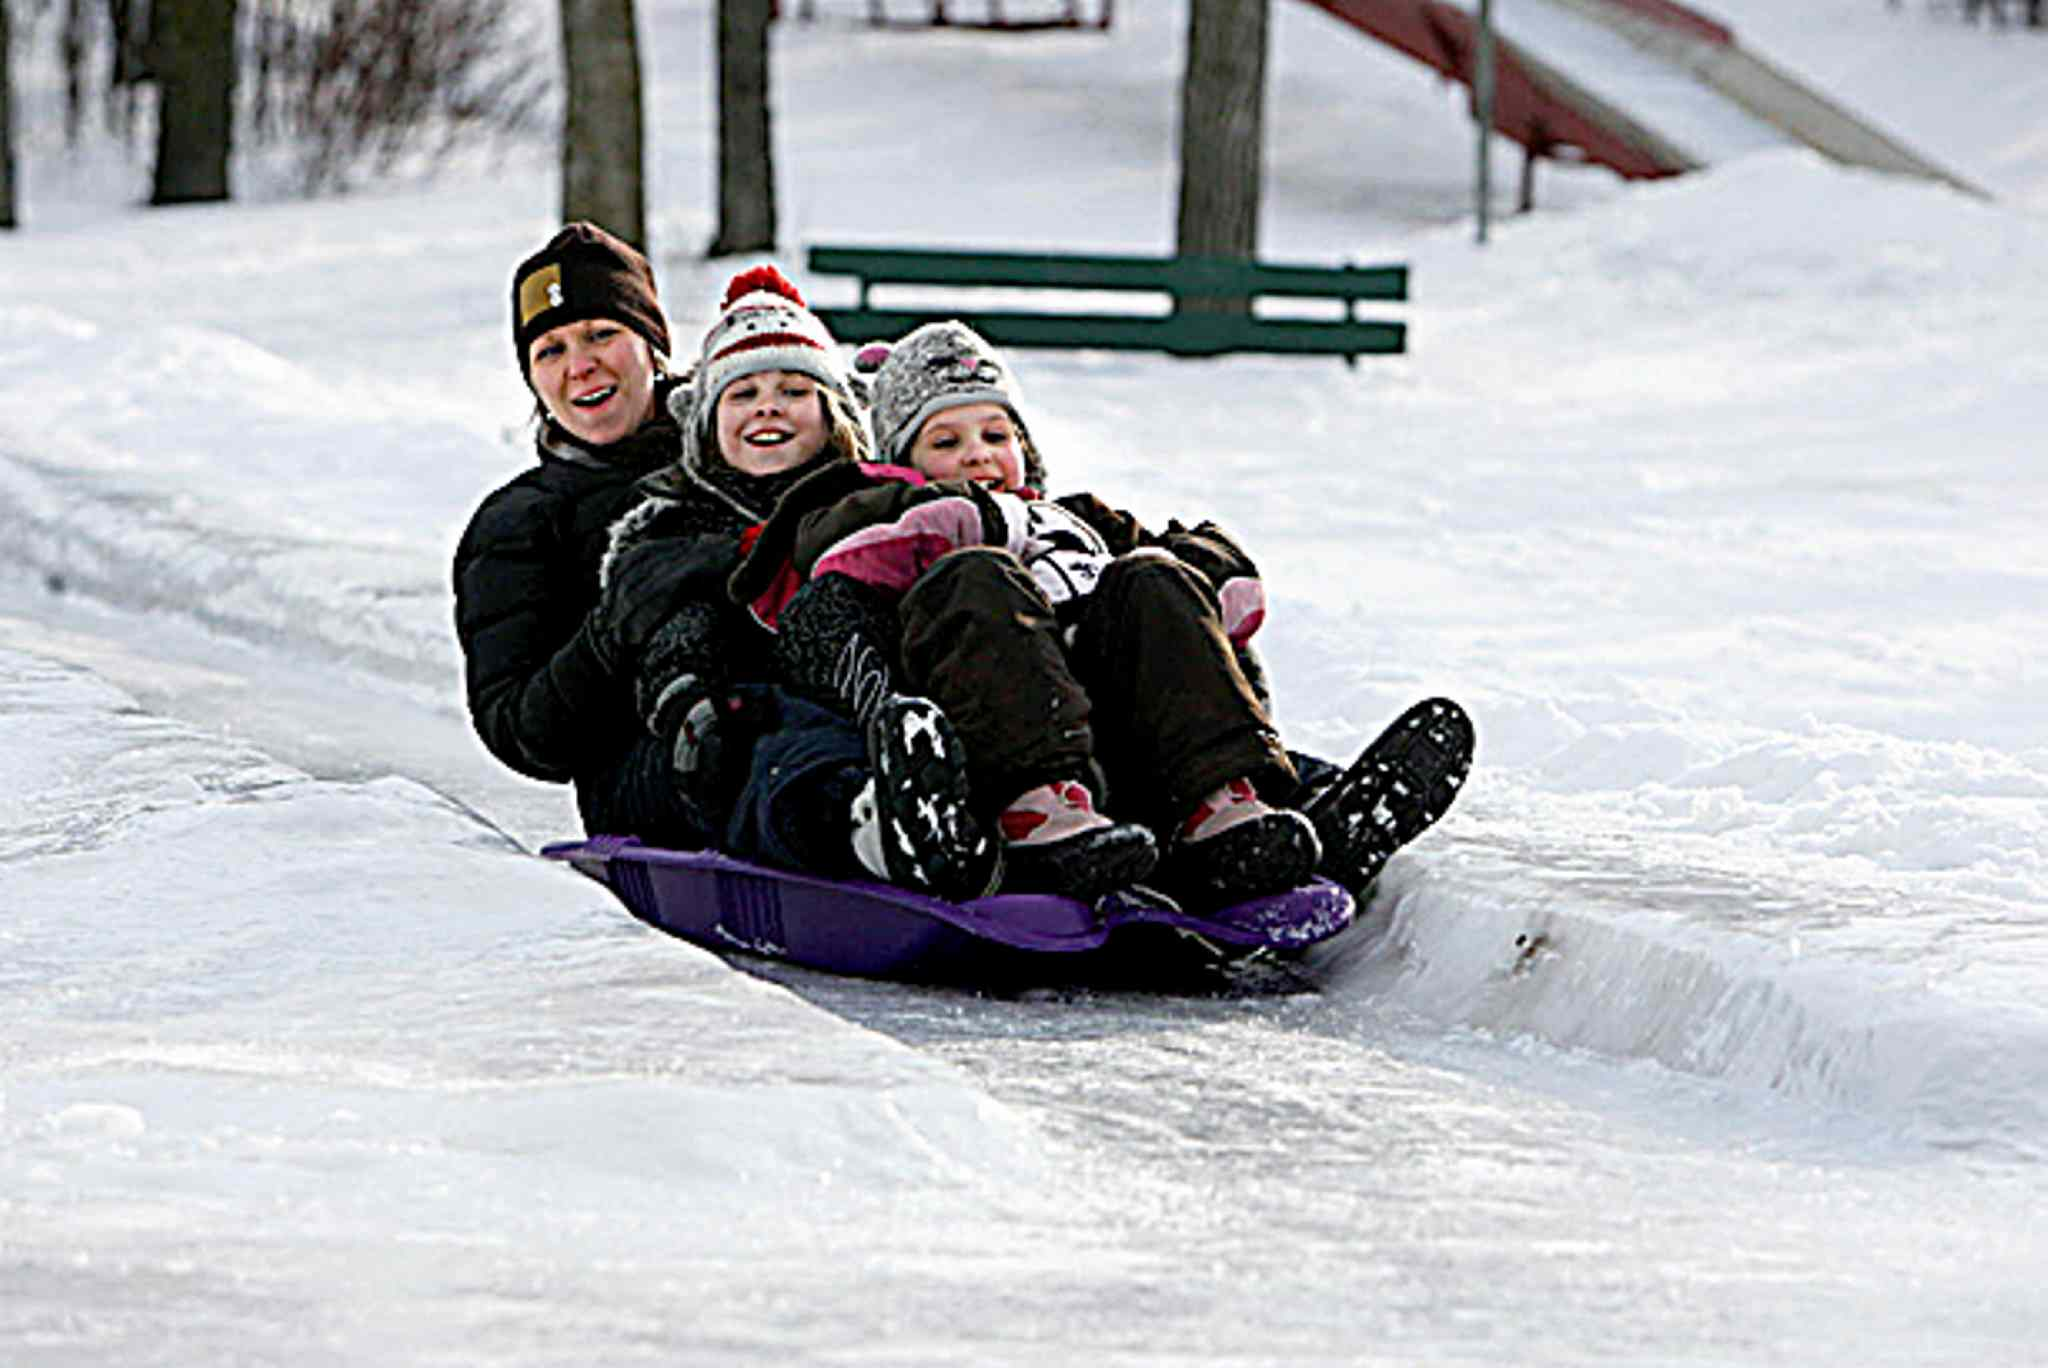 Enjoying the toboggan slides at Assiniboine Park, pictured in this file photo, is a great way to beat the winter blahs.